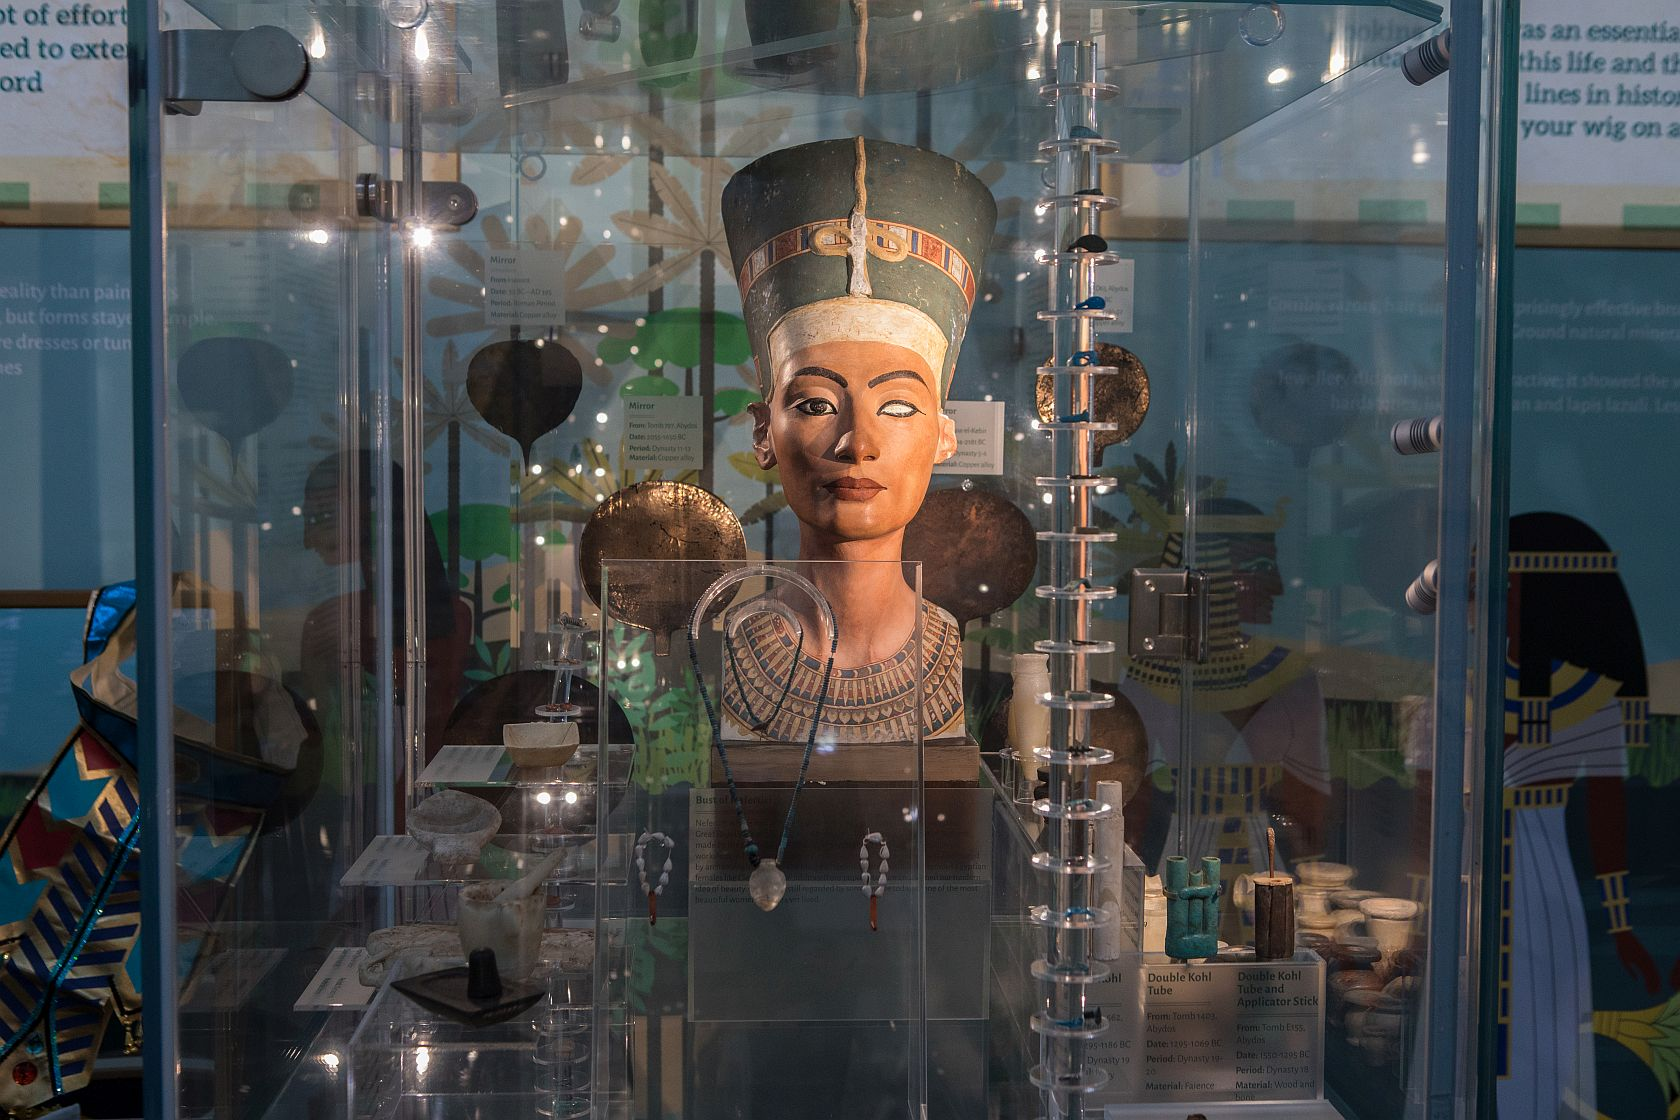 photograph of ancient egyptian bust of woman in display case with other encient egpytian artefacts